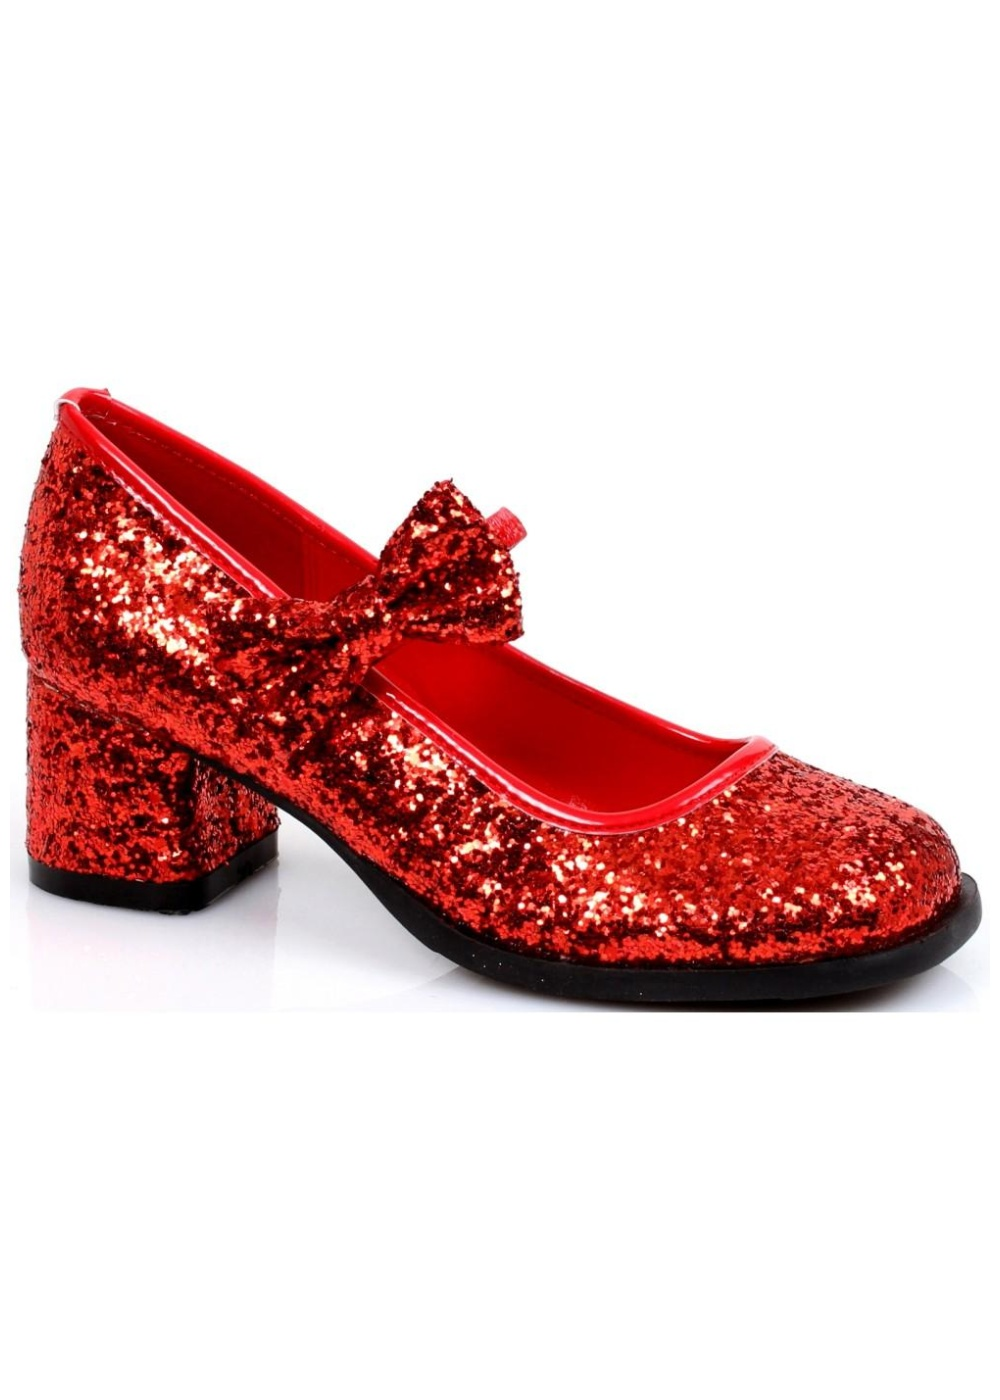 Sequin Shoes Size